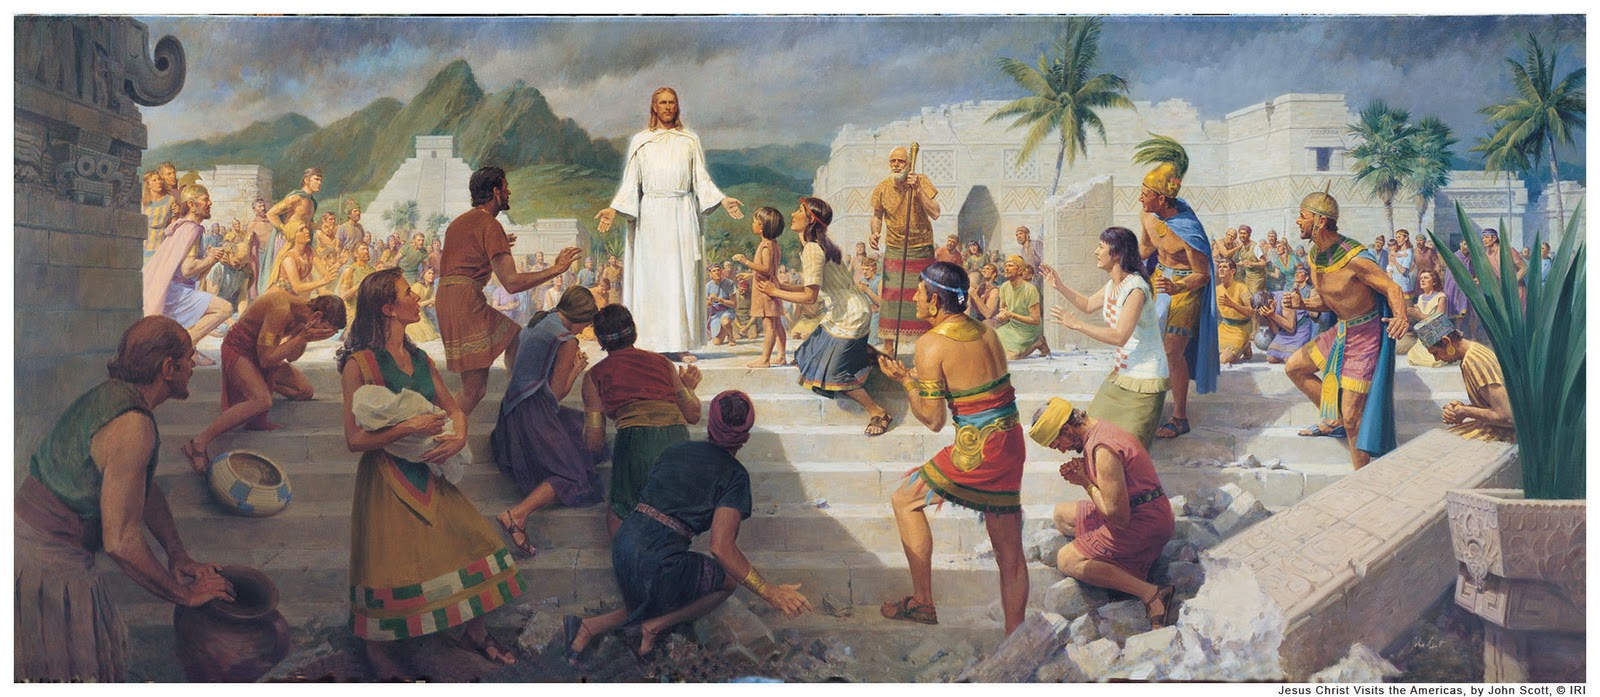 ... the Mormon bible have an image with a Mayan temple in the background